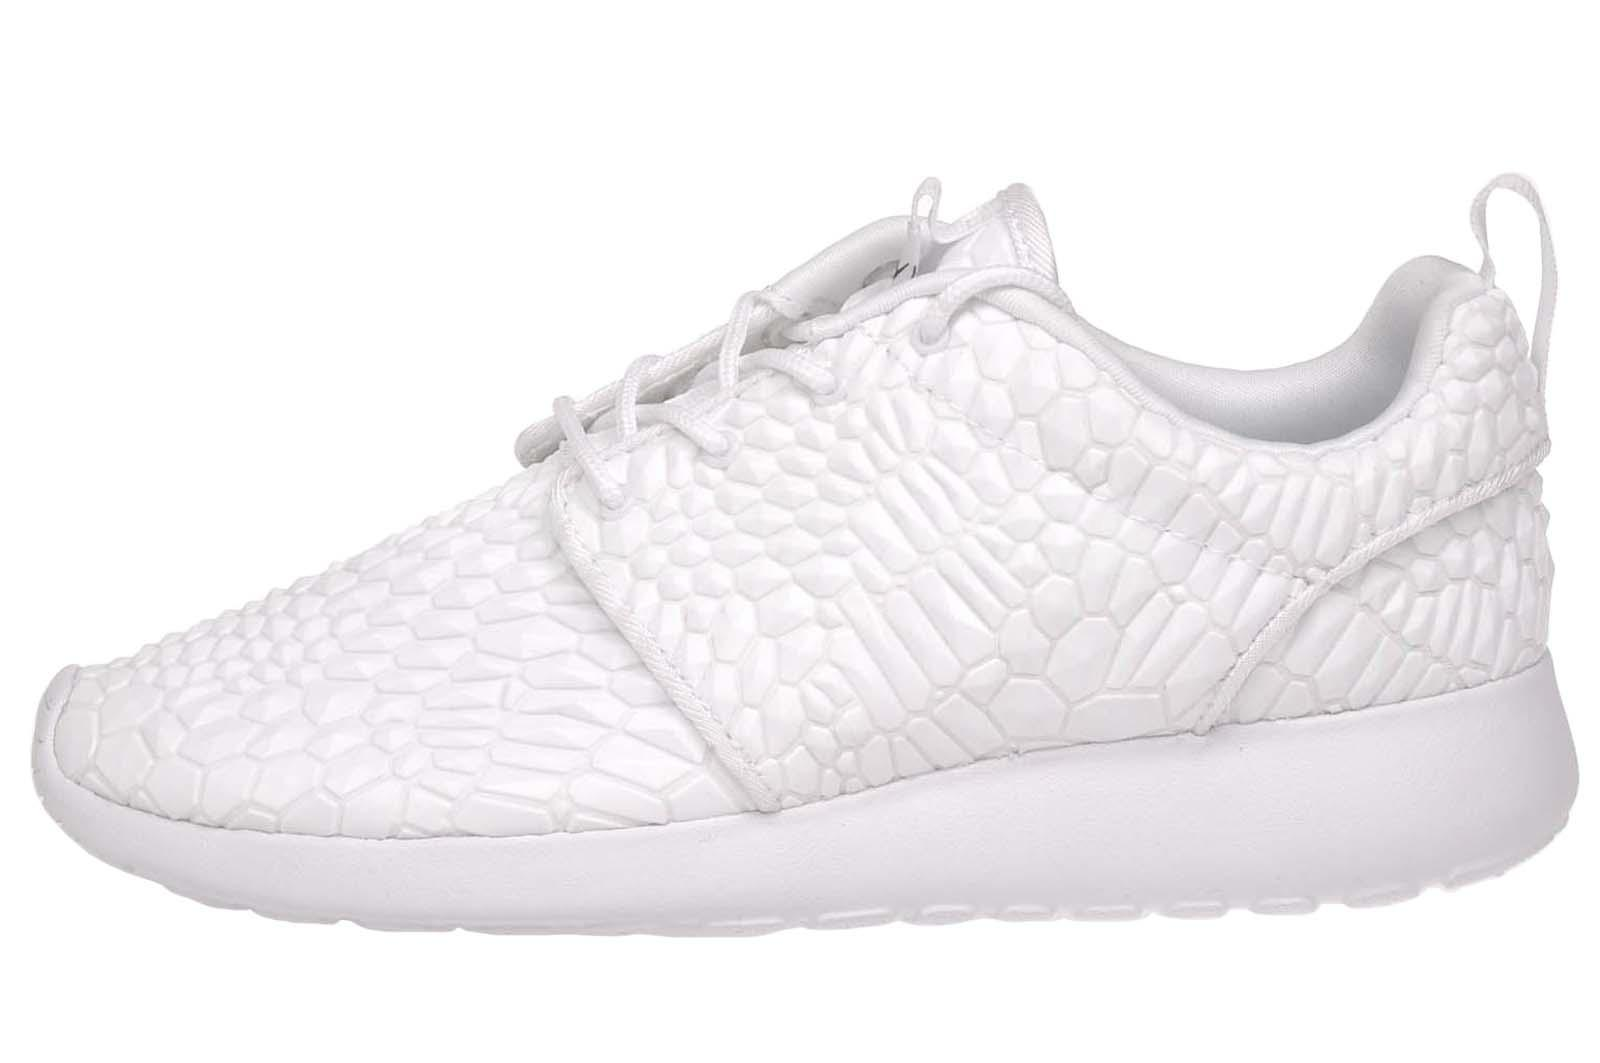 new concept 12f5d 38a28 ... Nike W Roshe One DMB QS Womens Running Shoes Rosherun 824286-100 ...